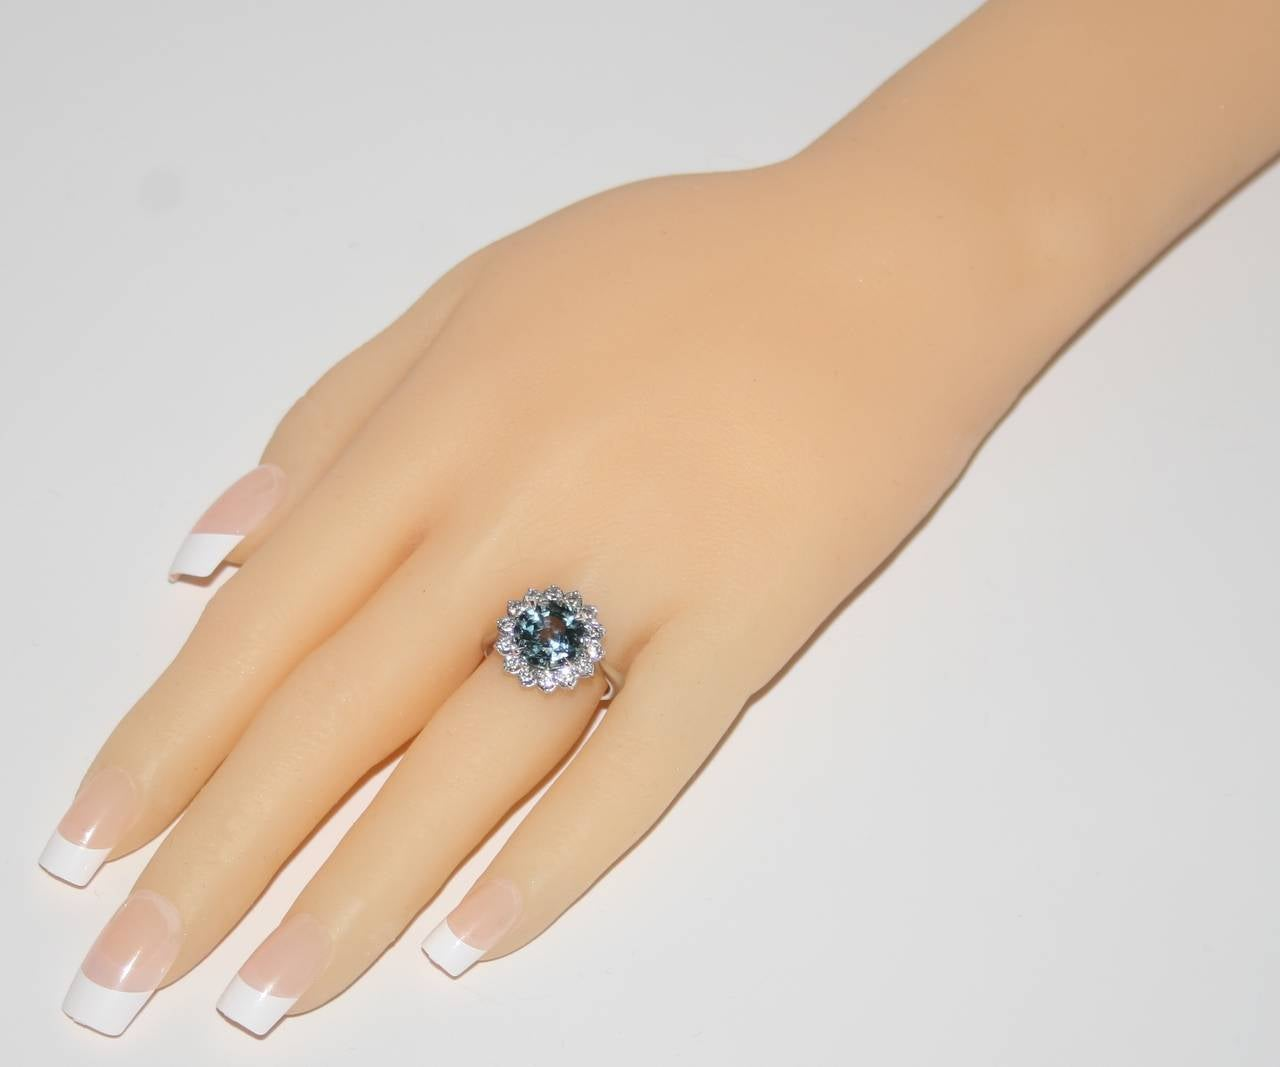 Contemporary Certified No Heat 5.03 Carat Grayish Blue Sapphire Diamond Ring For Sale